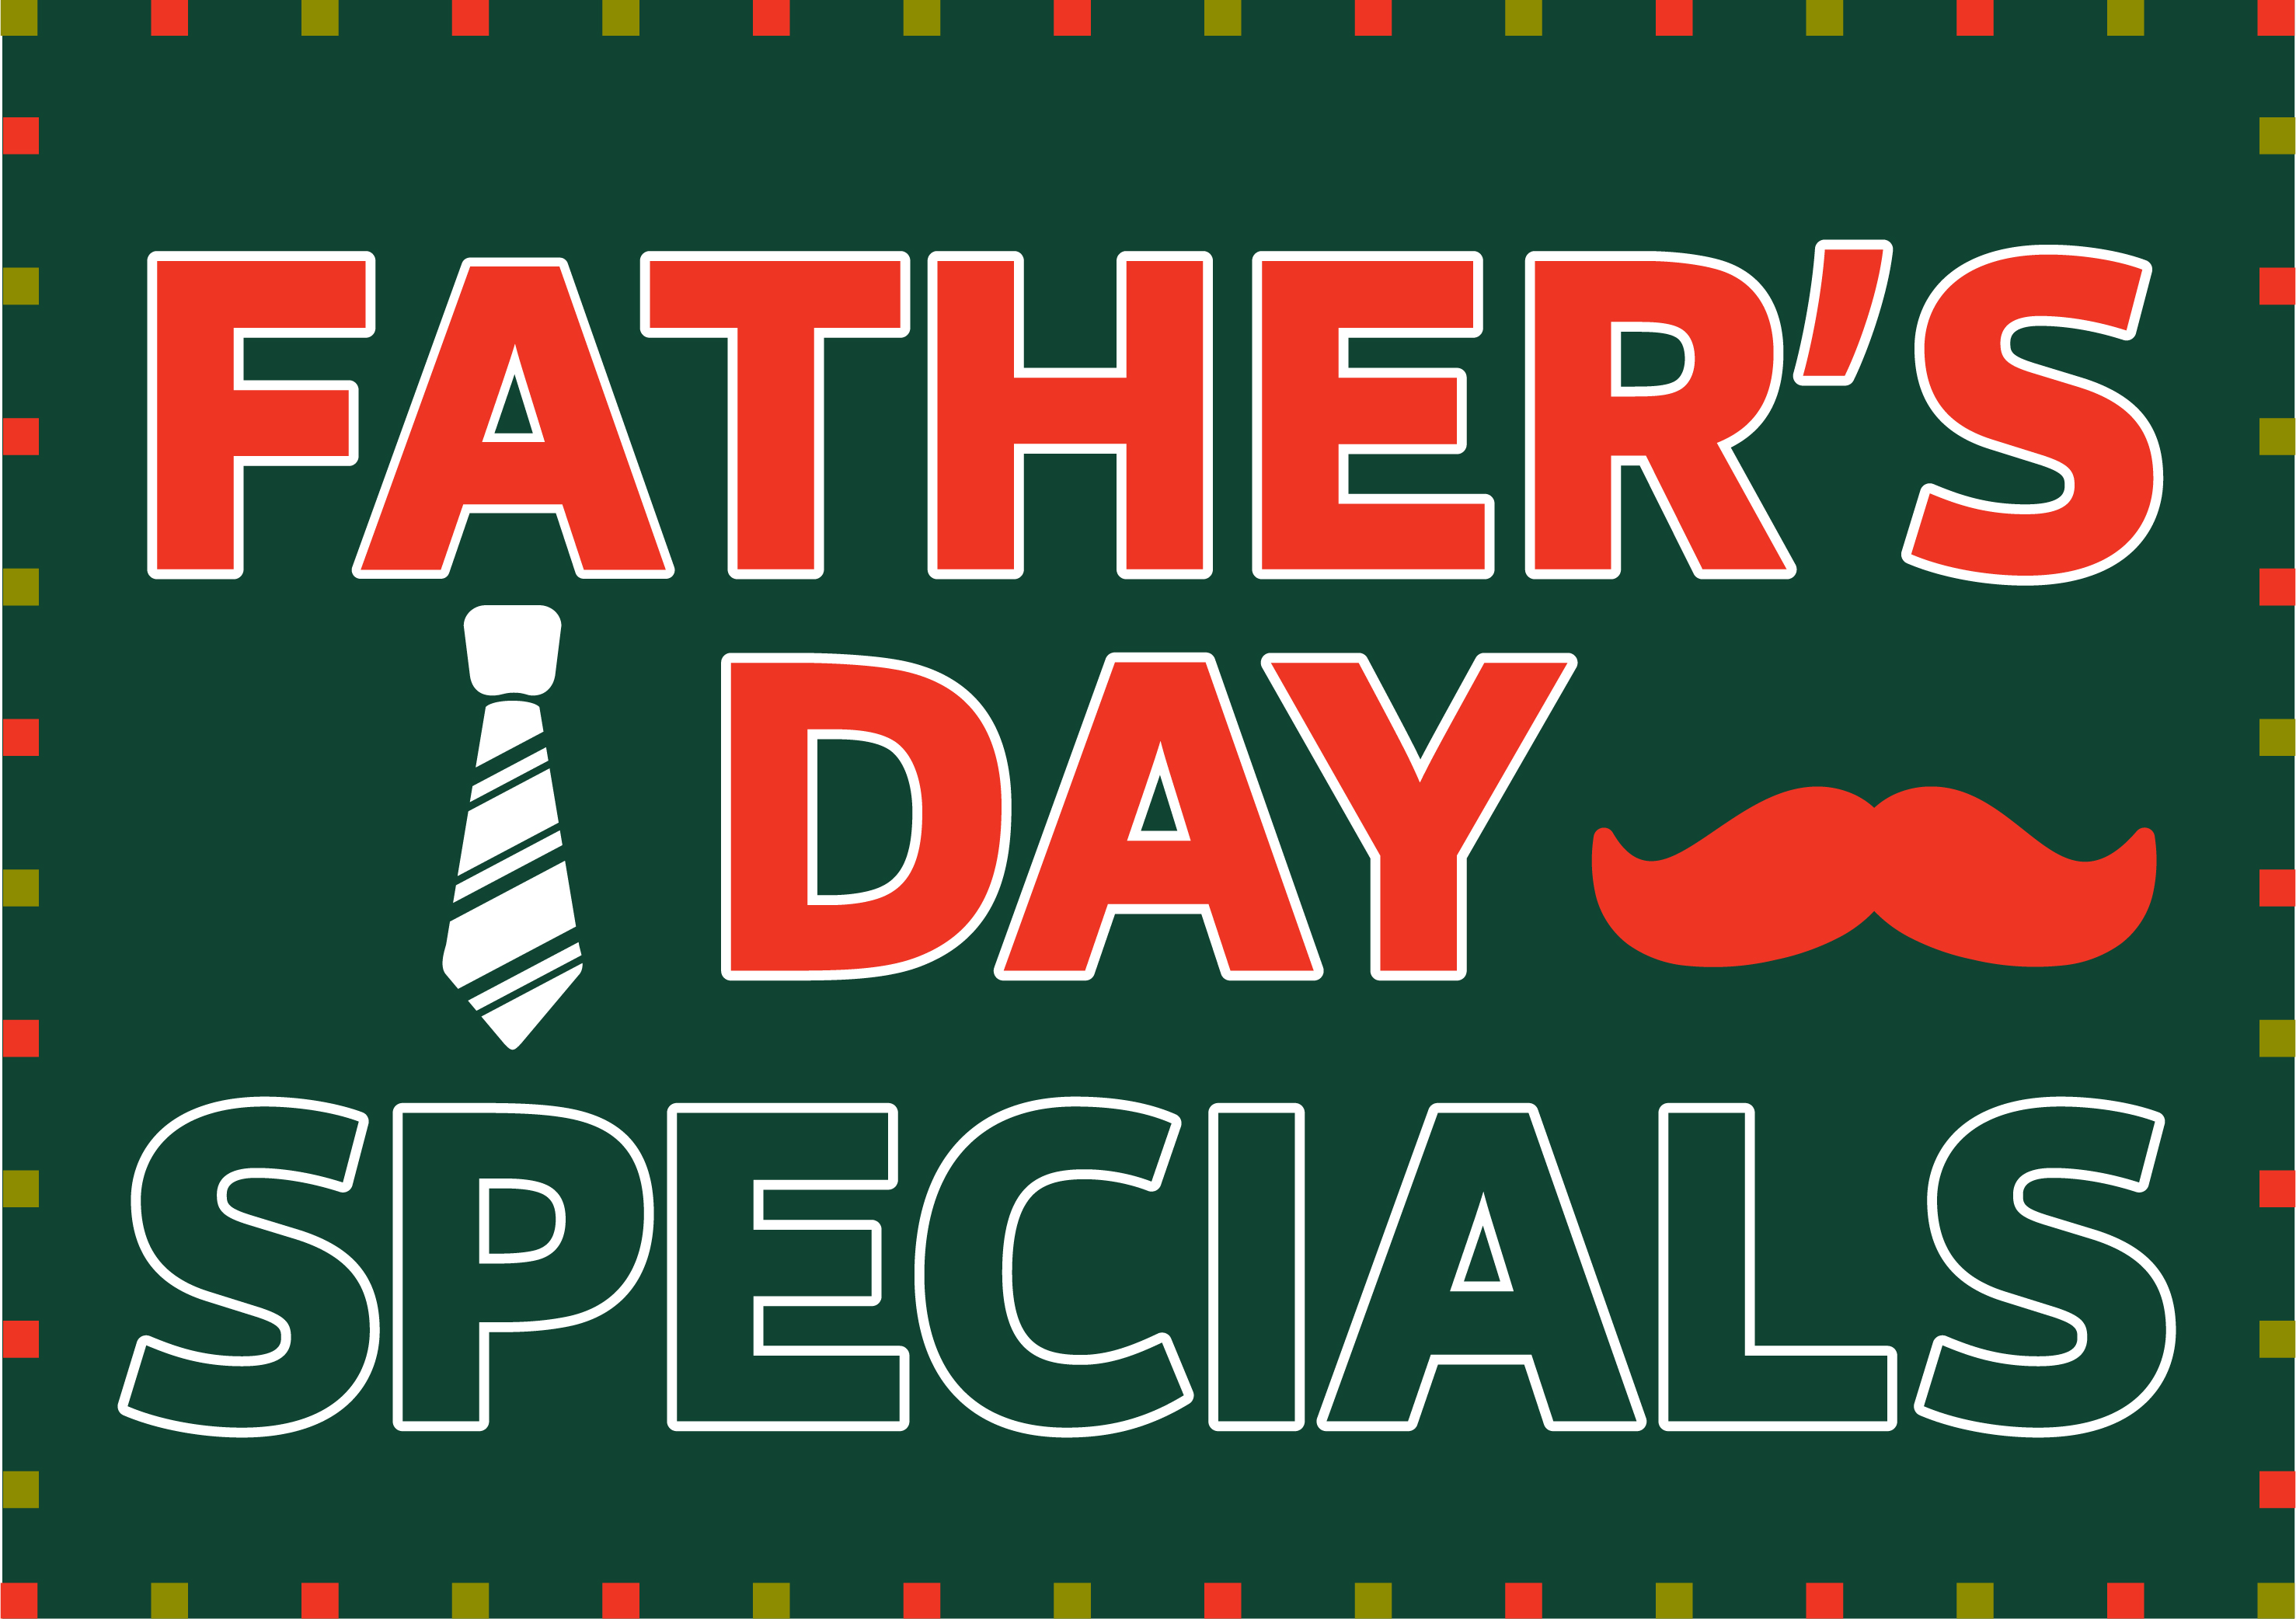 Fathers day webslider2